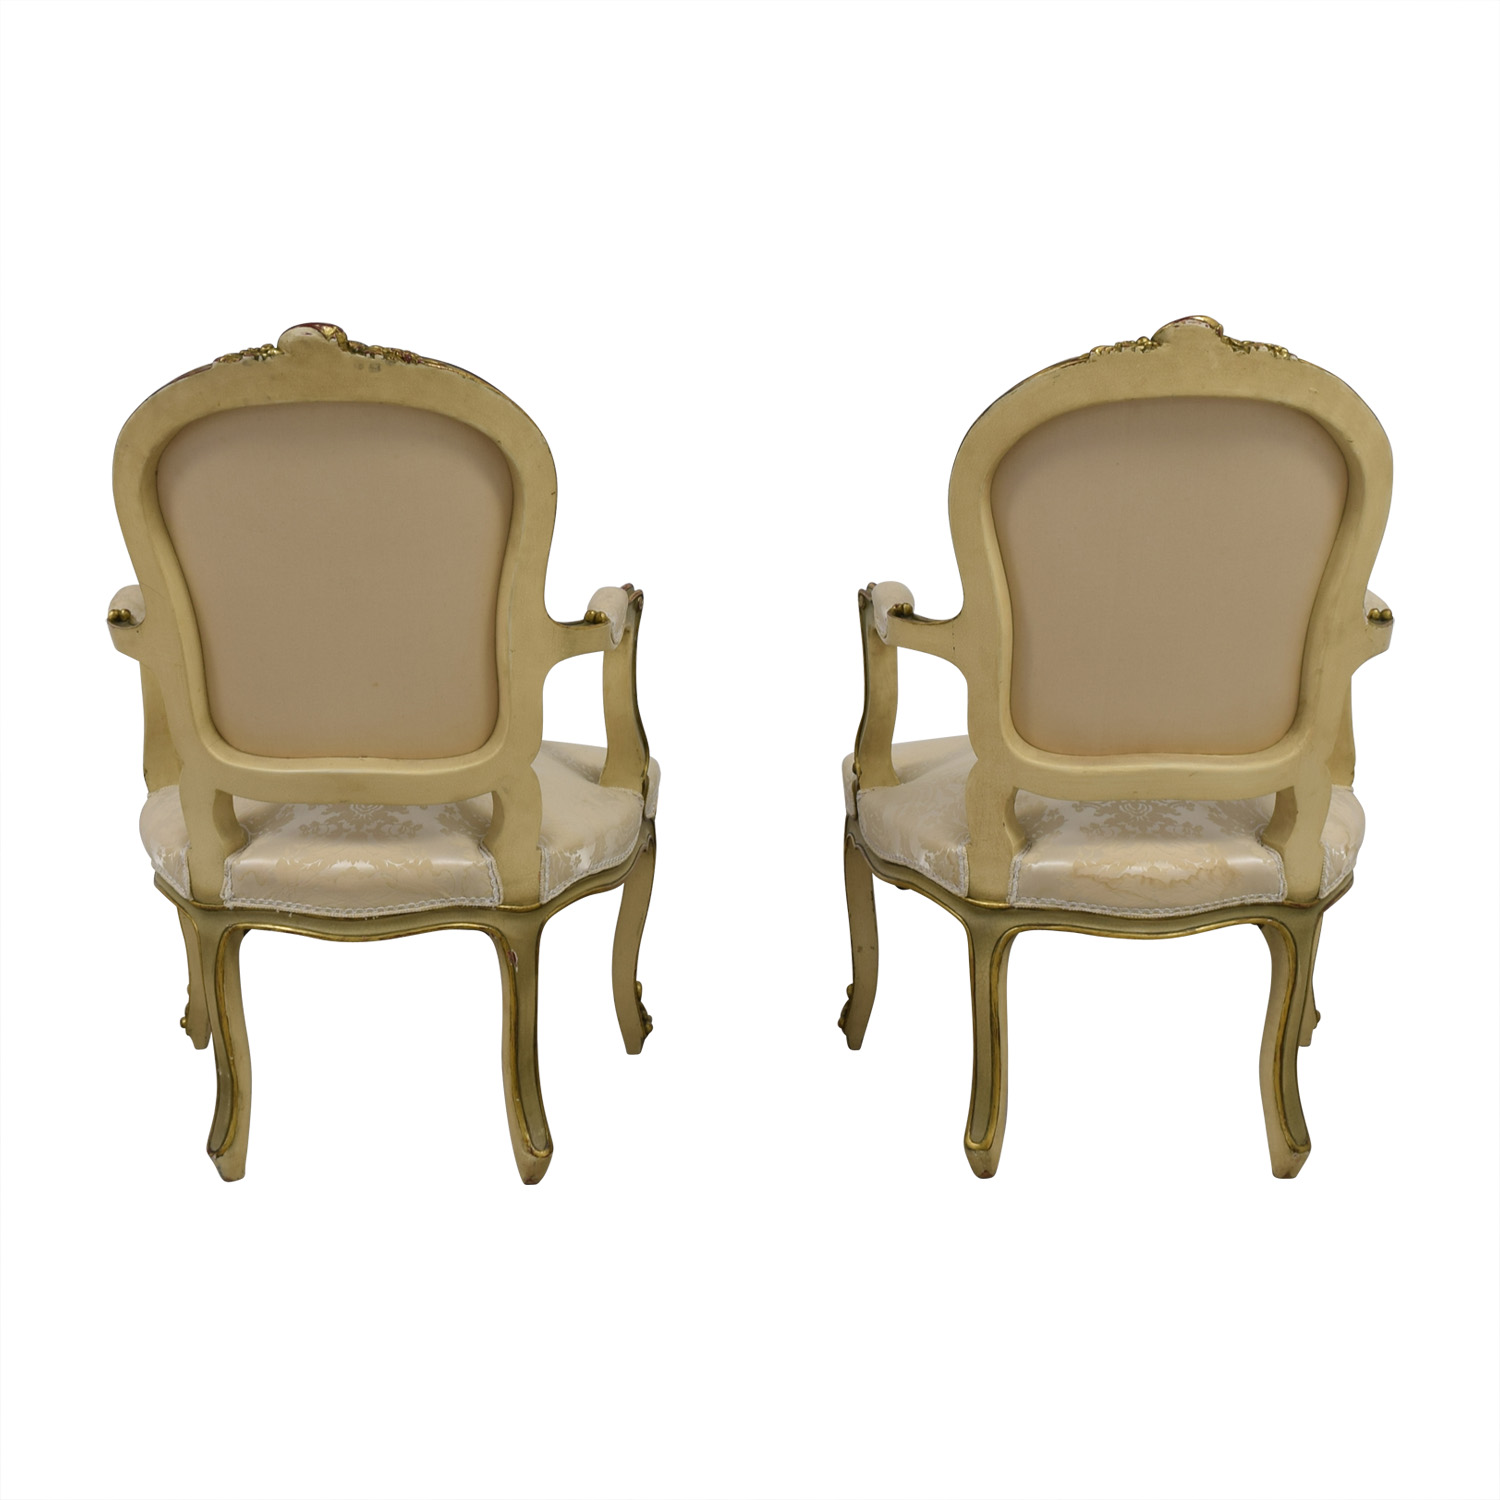 Antique White Jacquard Upholstered Gold Arm Chairs Chairs